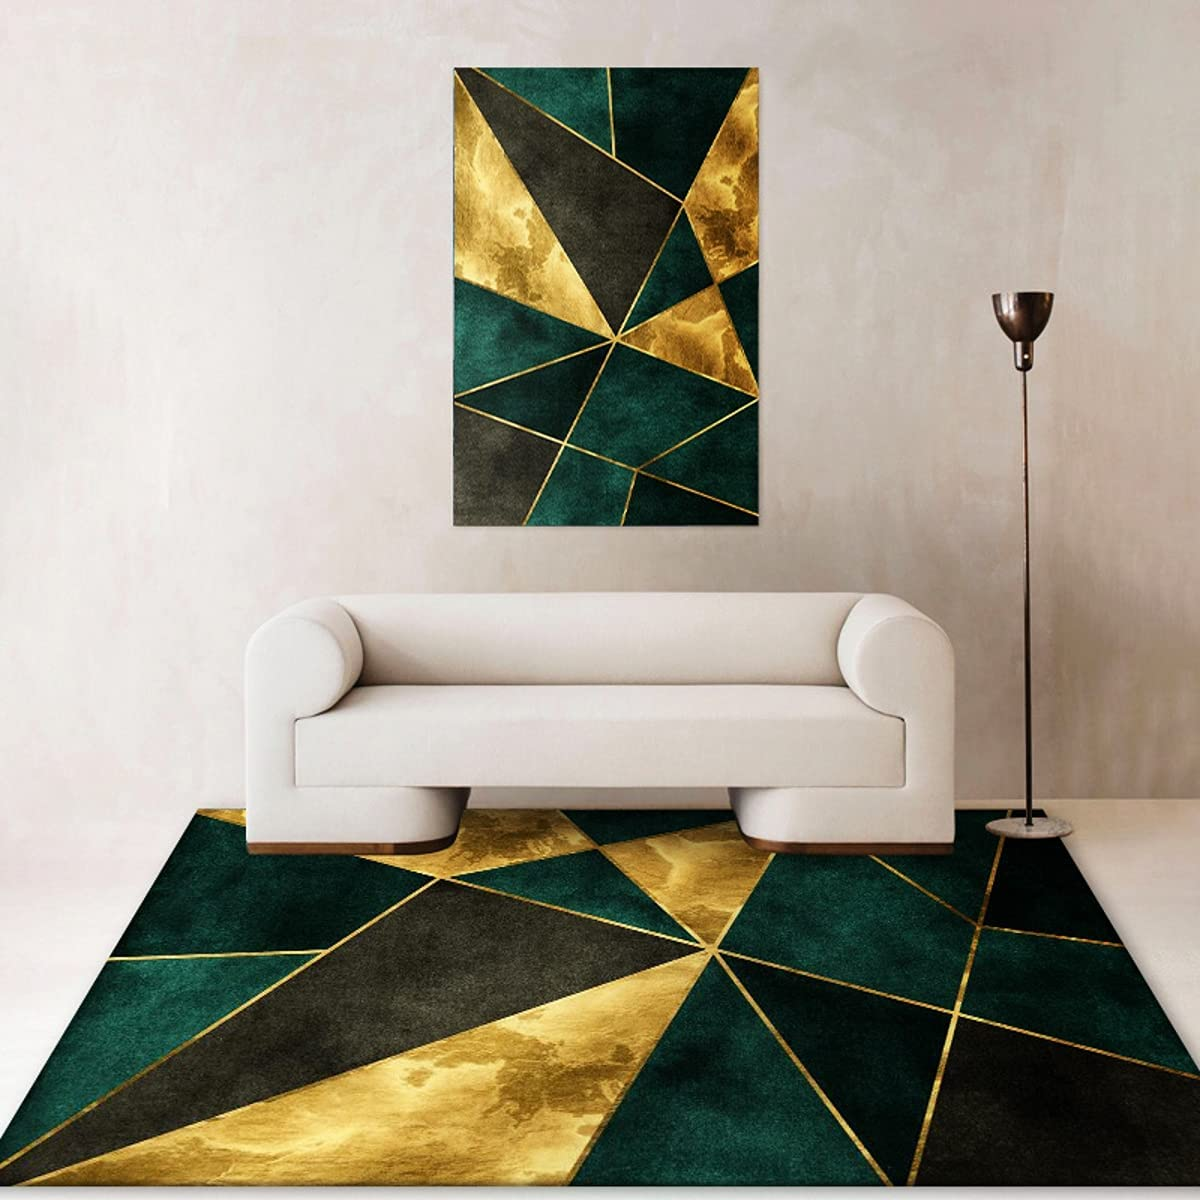 Green Gold Geometric Boxes Triangles Beveled Pattern Area Rug for Livingroom Bedroom Modern Abstract Carpets Kitchen Diningroom Contemporary Thick Rugs Indoor Entway Runner Rugs Floor Mat 5x7ft B